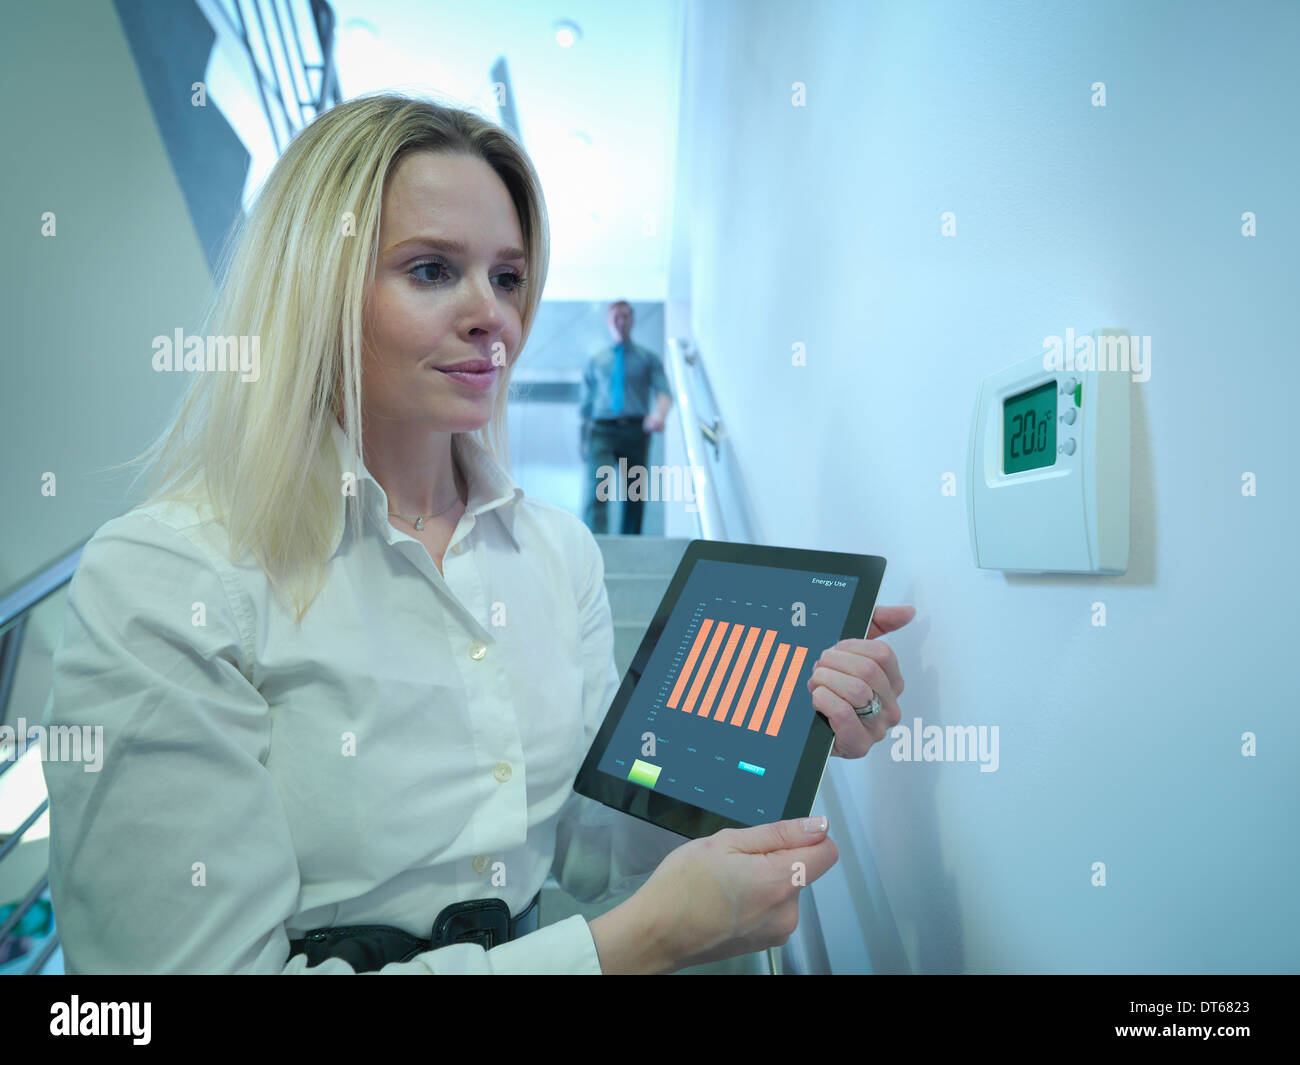 Office worker holding digital tablet next to office thermostat in stairwell - Stock Image